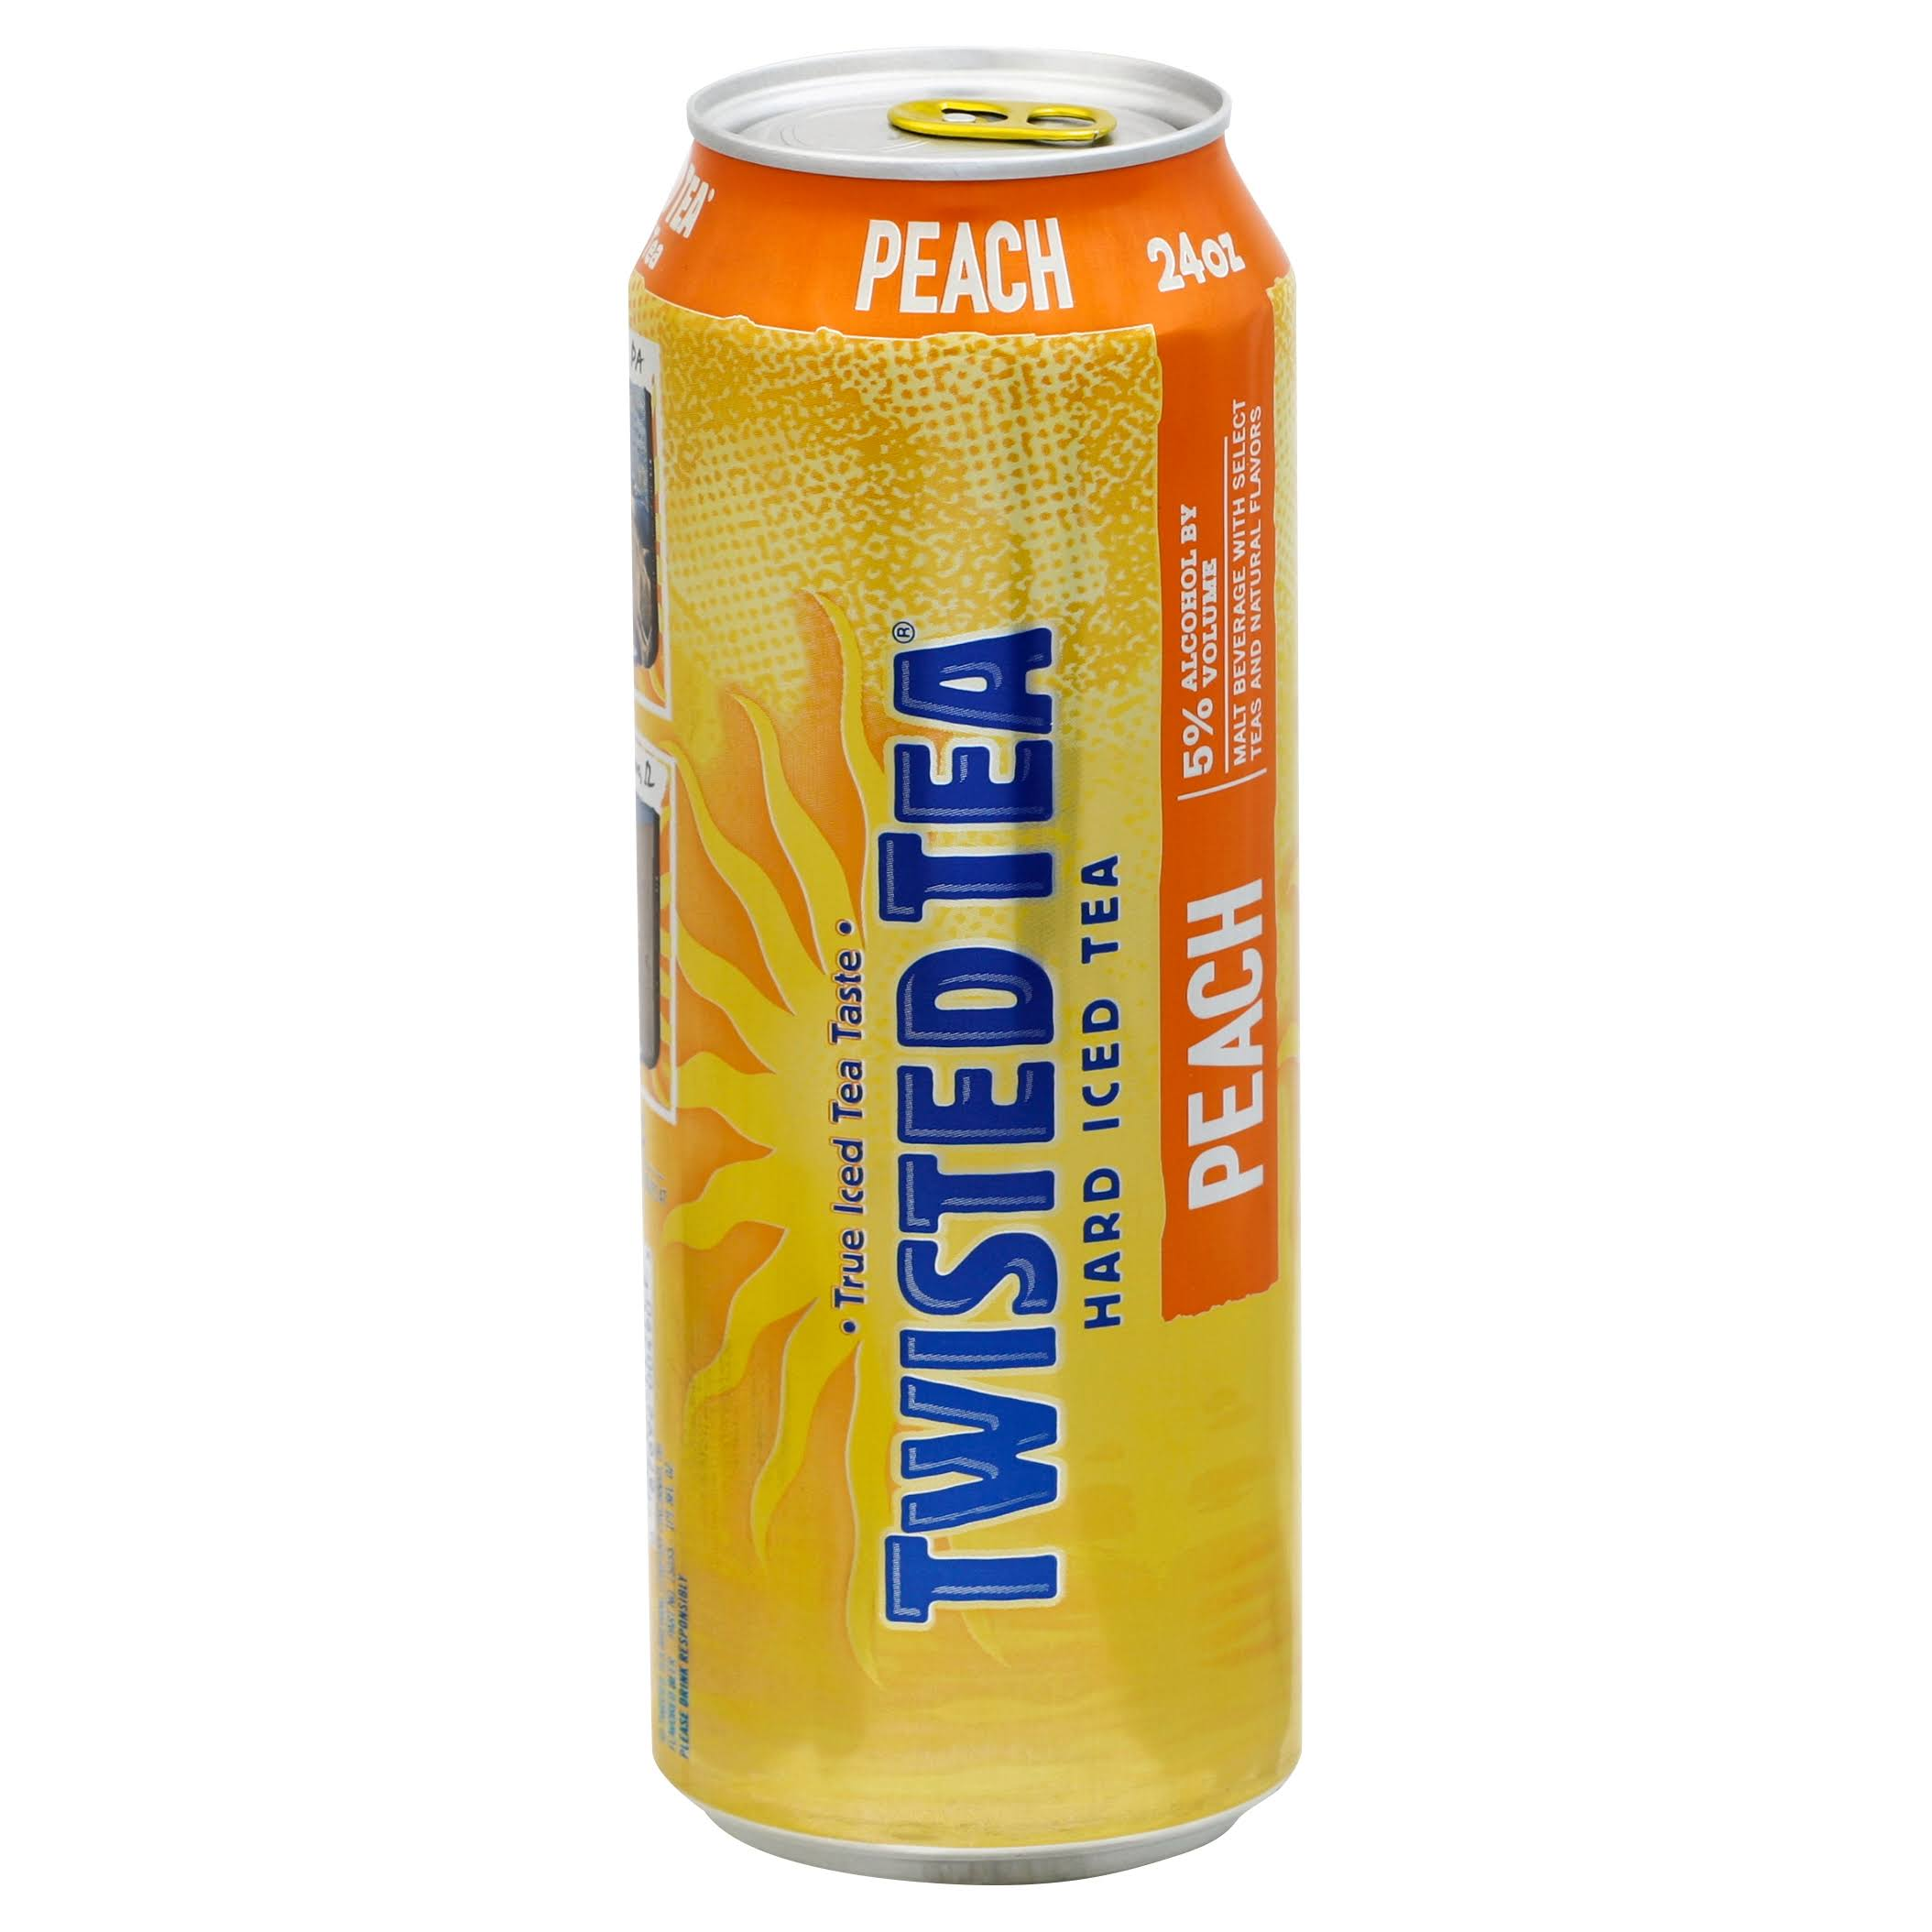 Twisted Tea Hard Iced Tea, Peach - 24 oz